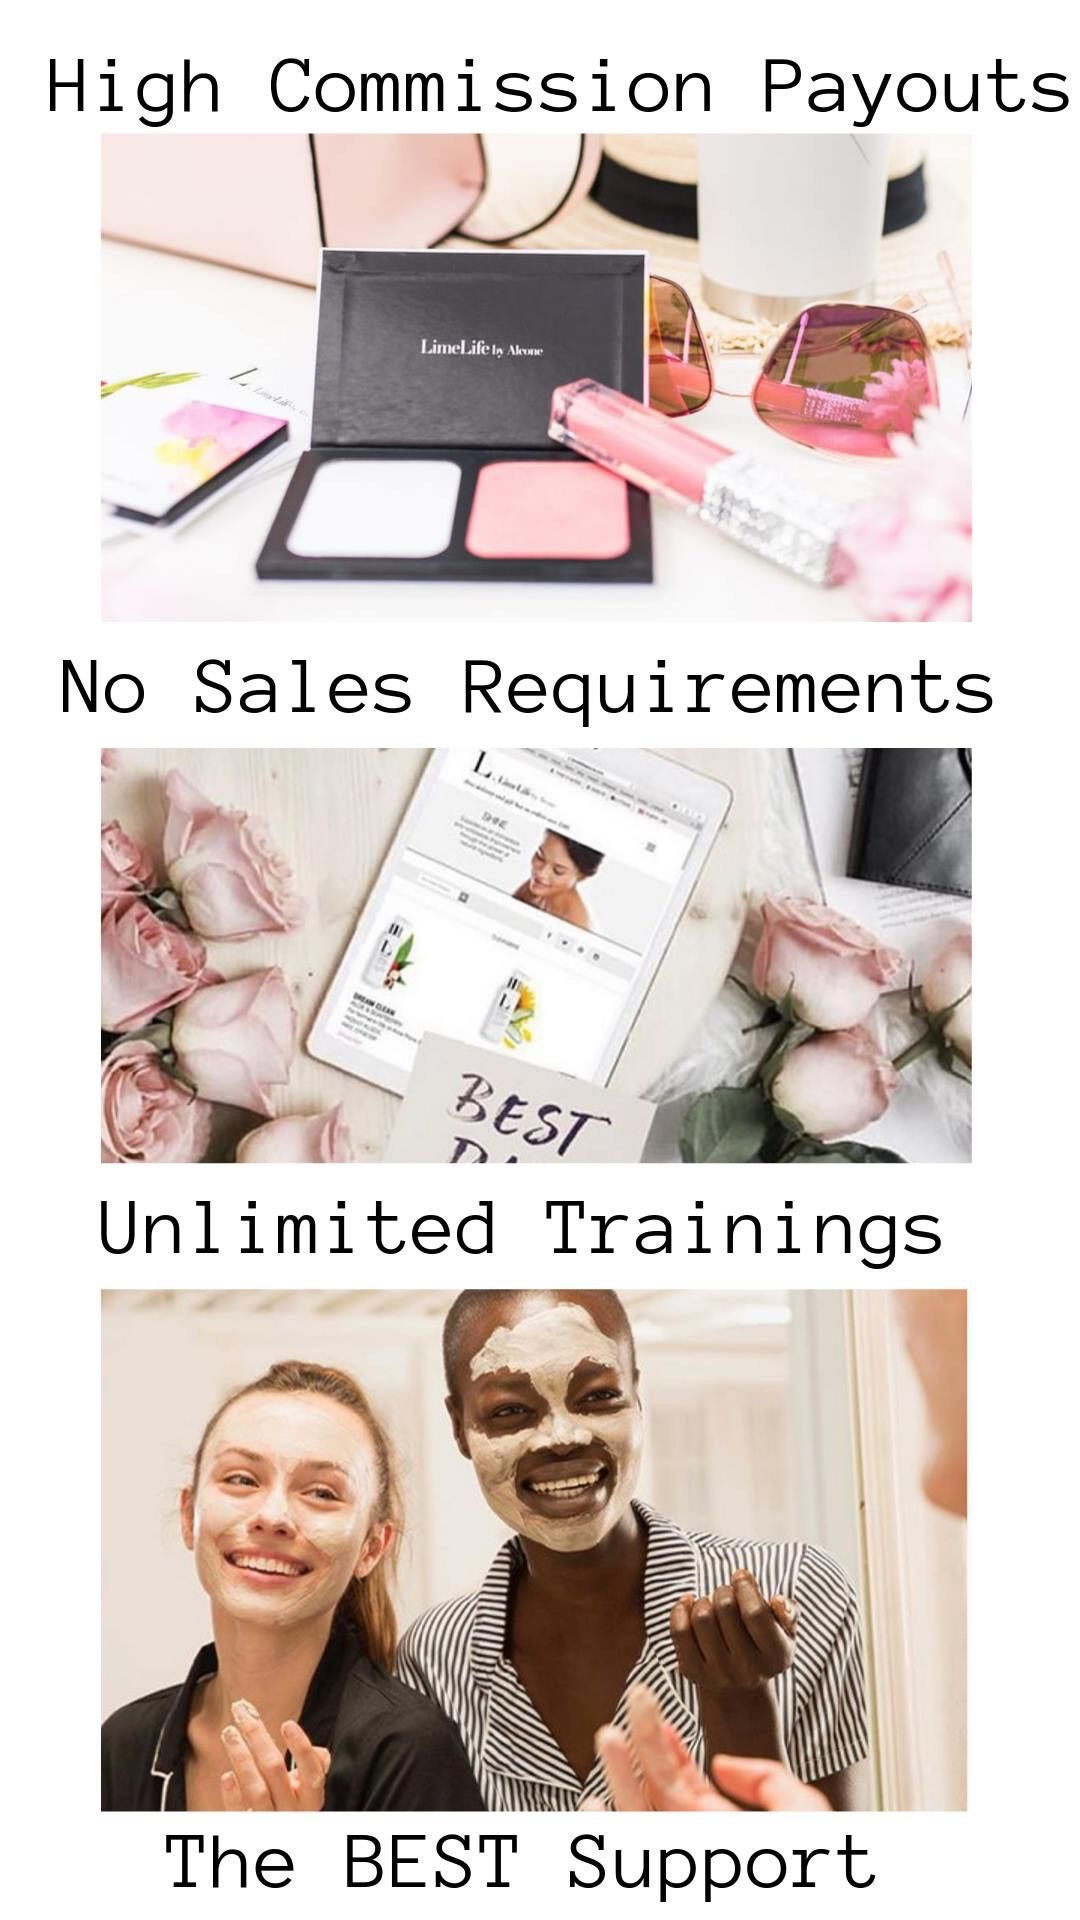 Limelife Makeup Business In 2020 Beauty Business Makeup Over 40 Skin Care